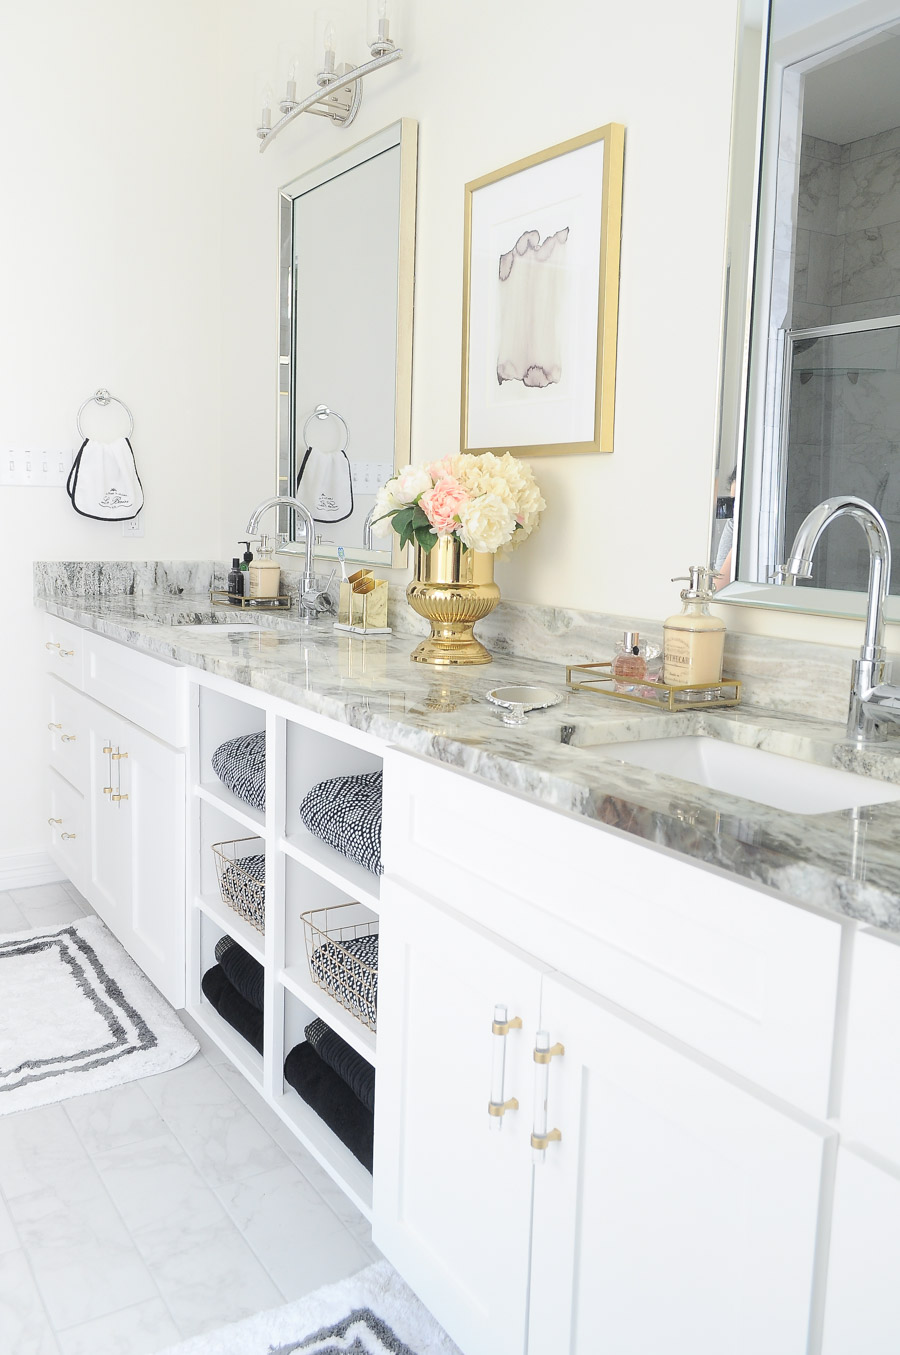 A light and airy bright white and gold master bathroom with black and white decor accents, feminine decor and chic details. This space is swoonworthy!